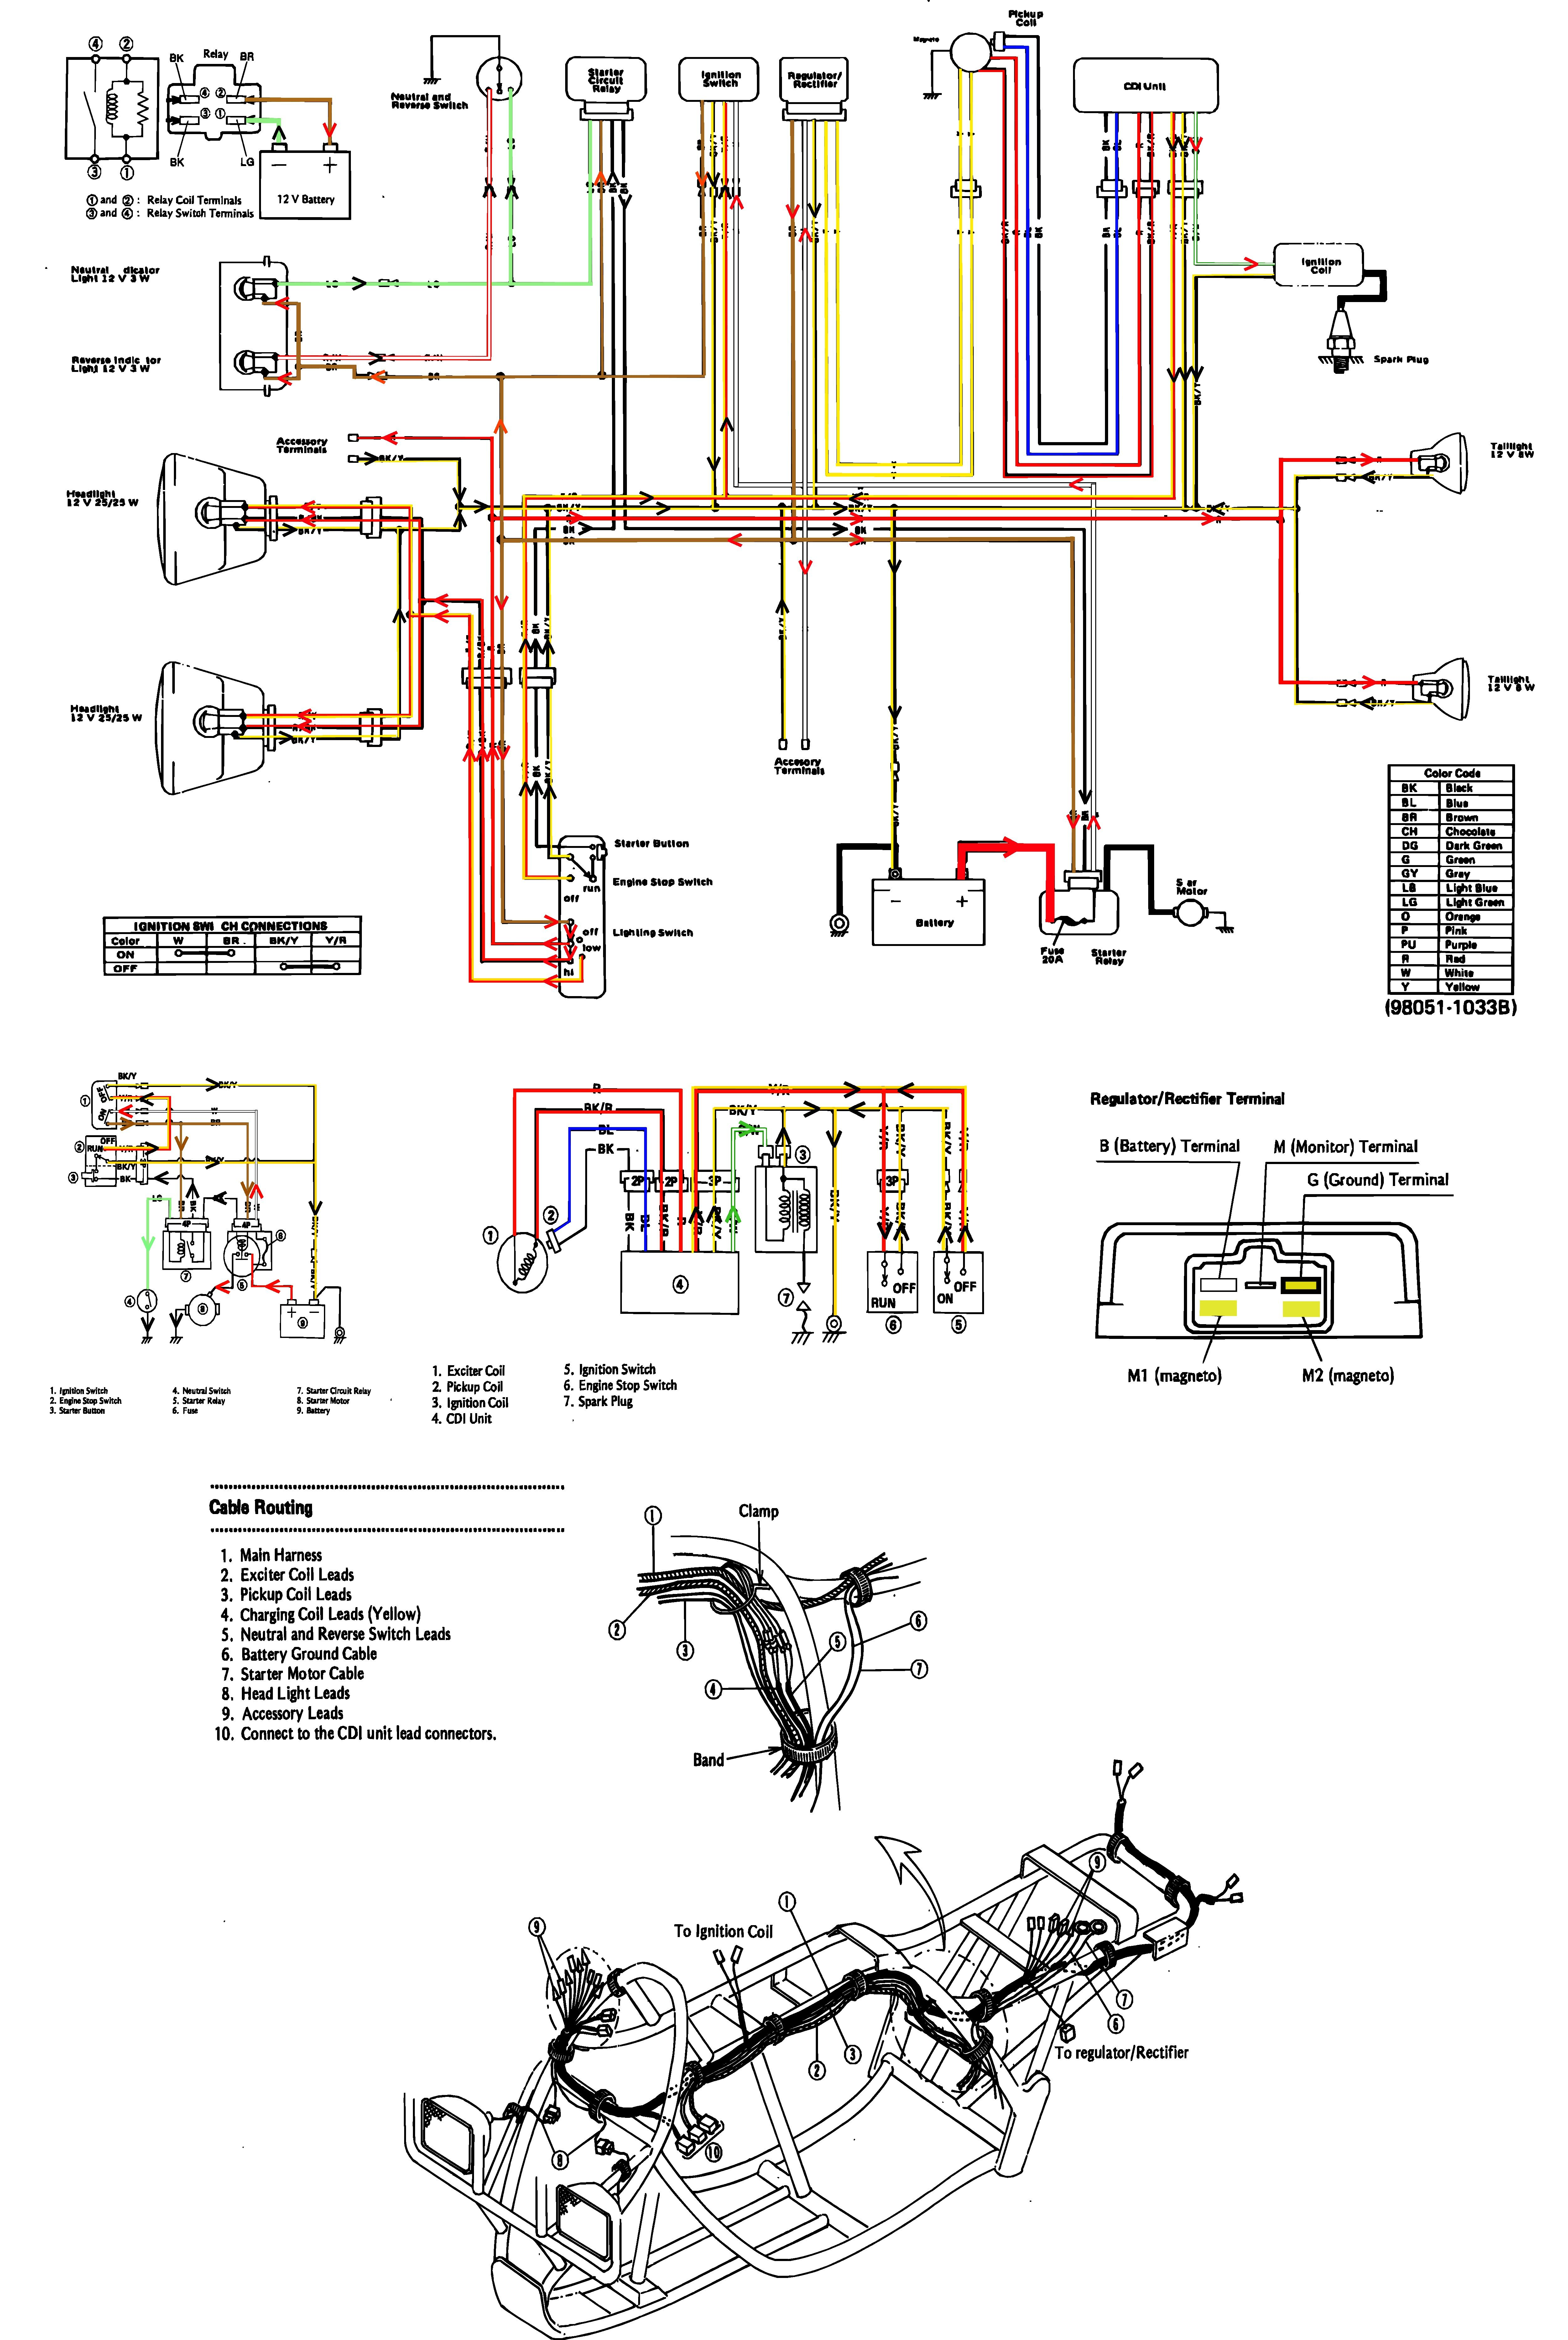 6 Wire Cdi Diagram Kawasaki | Wiring Library